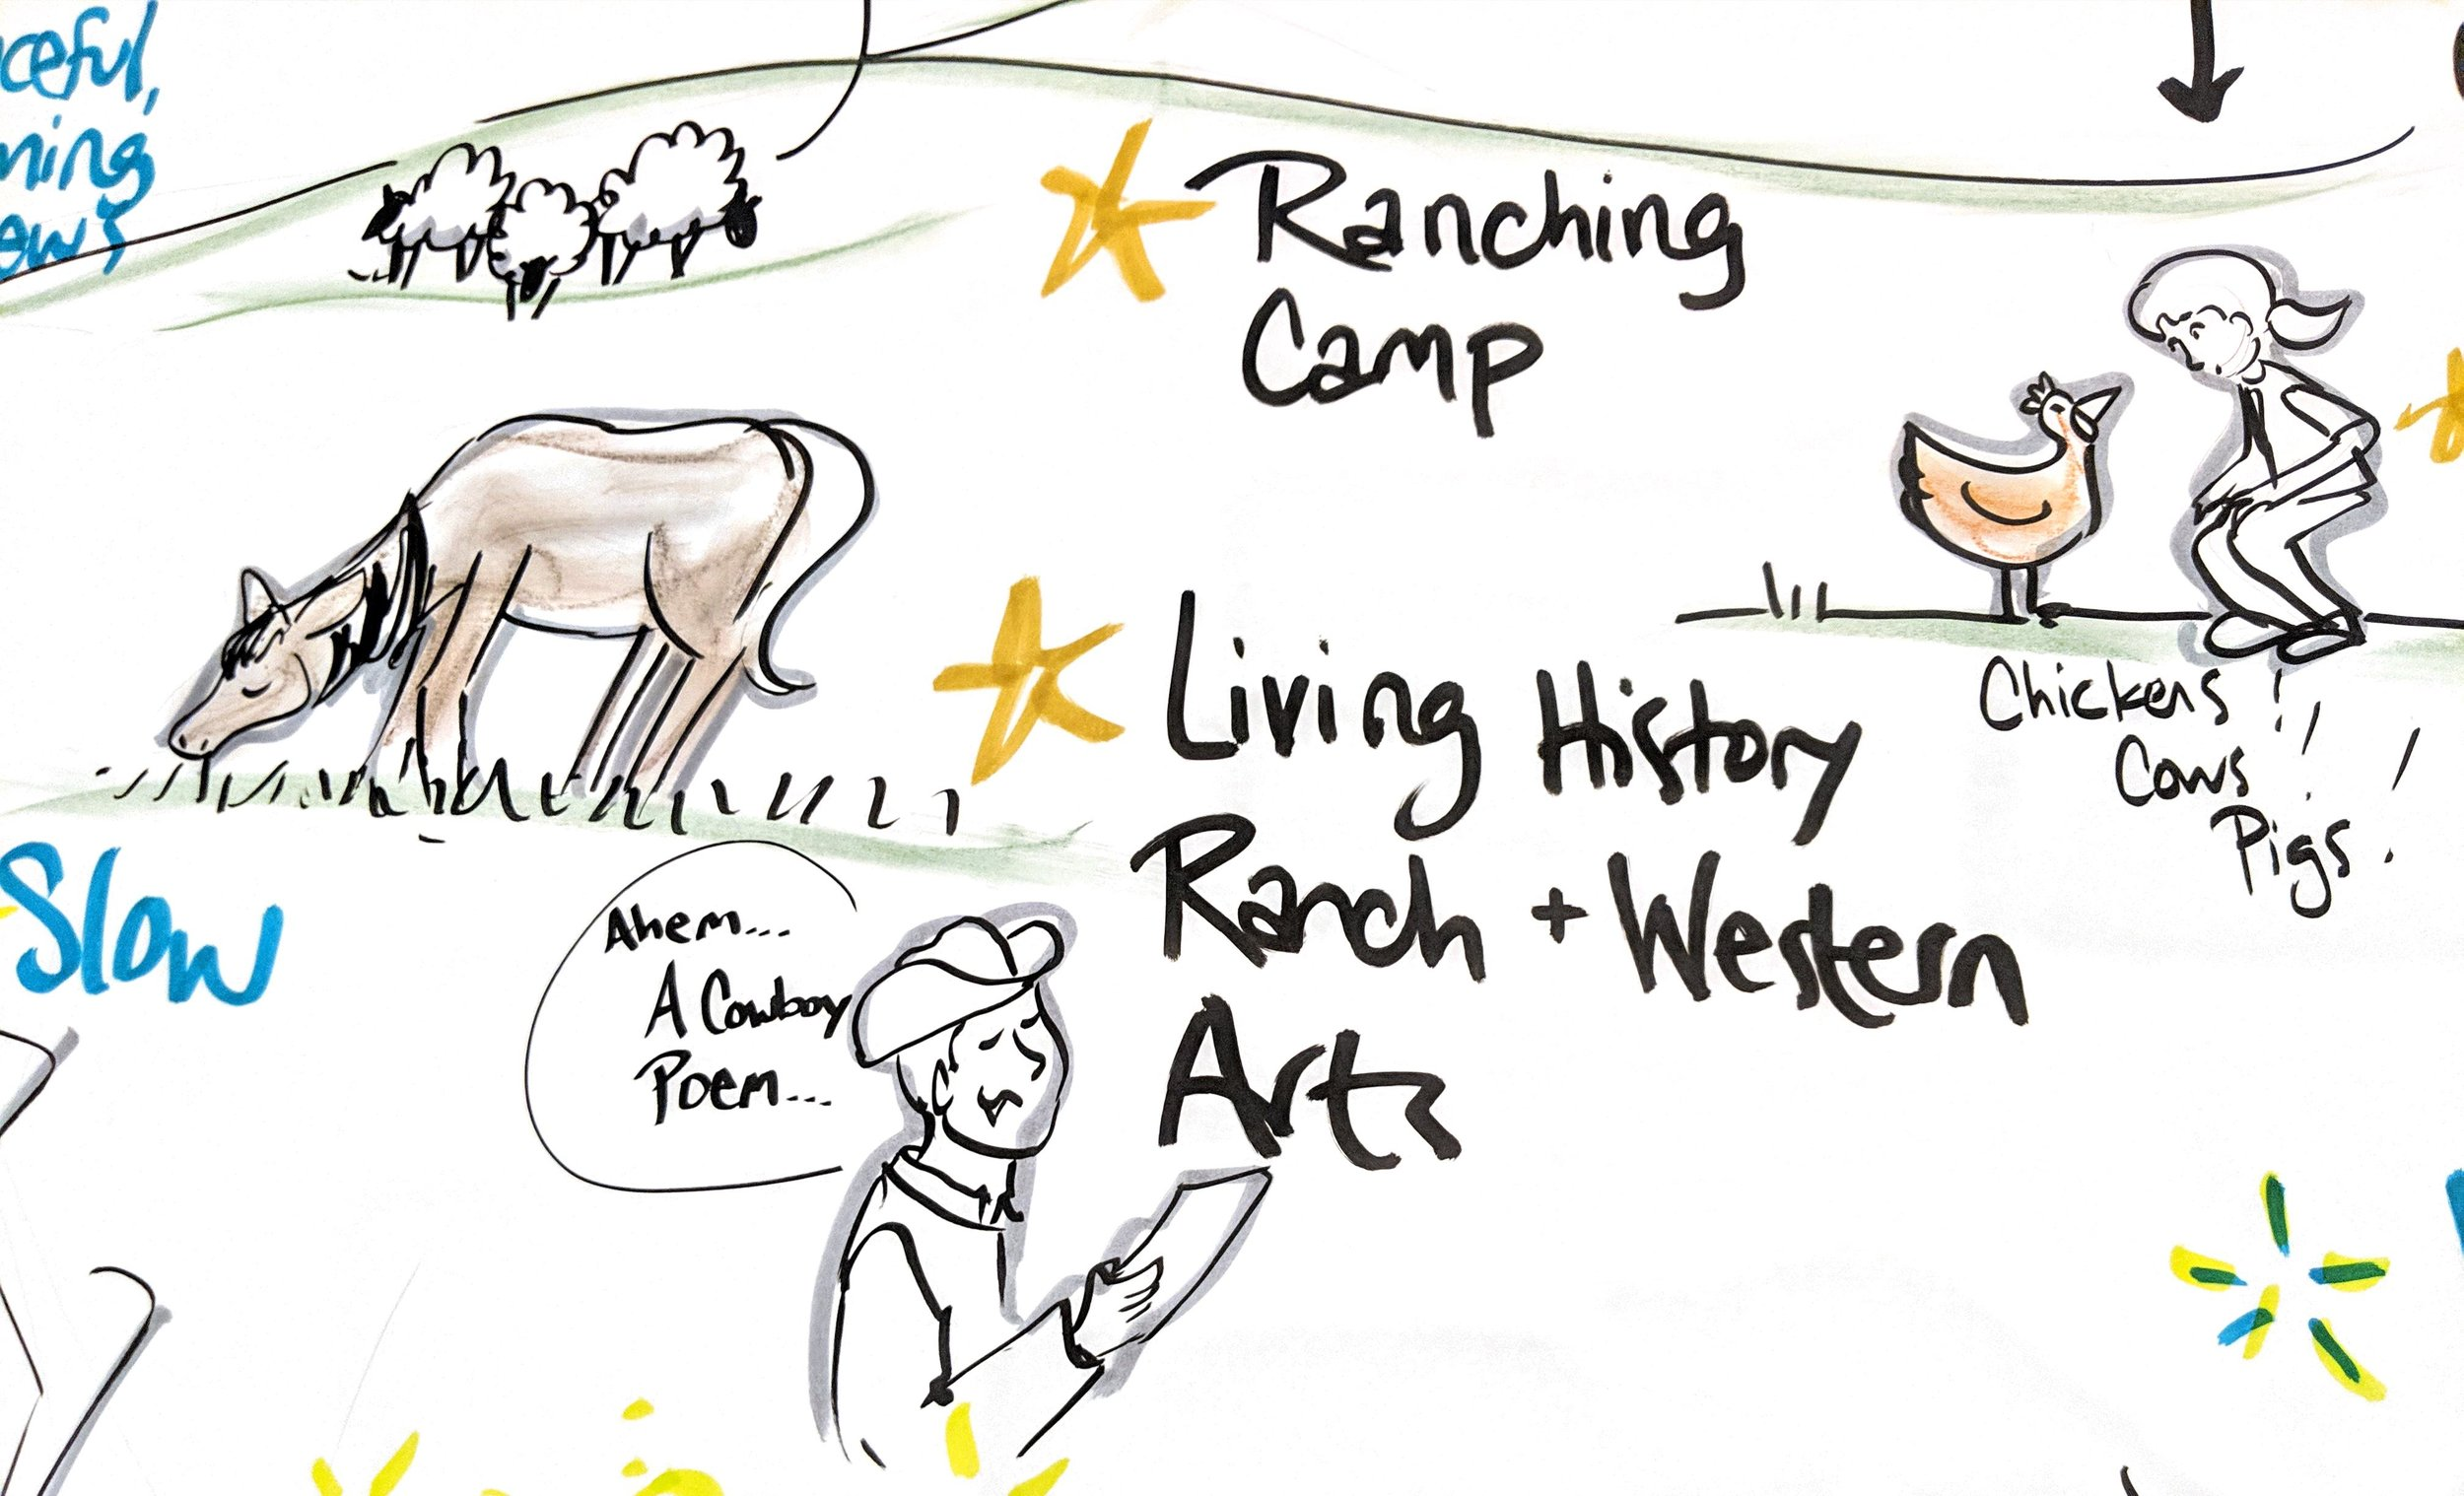 custer-county-vision-conversketch-graphic-recording-cowboy-poetry